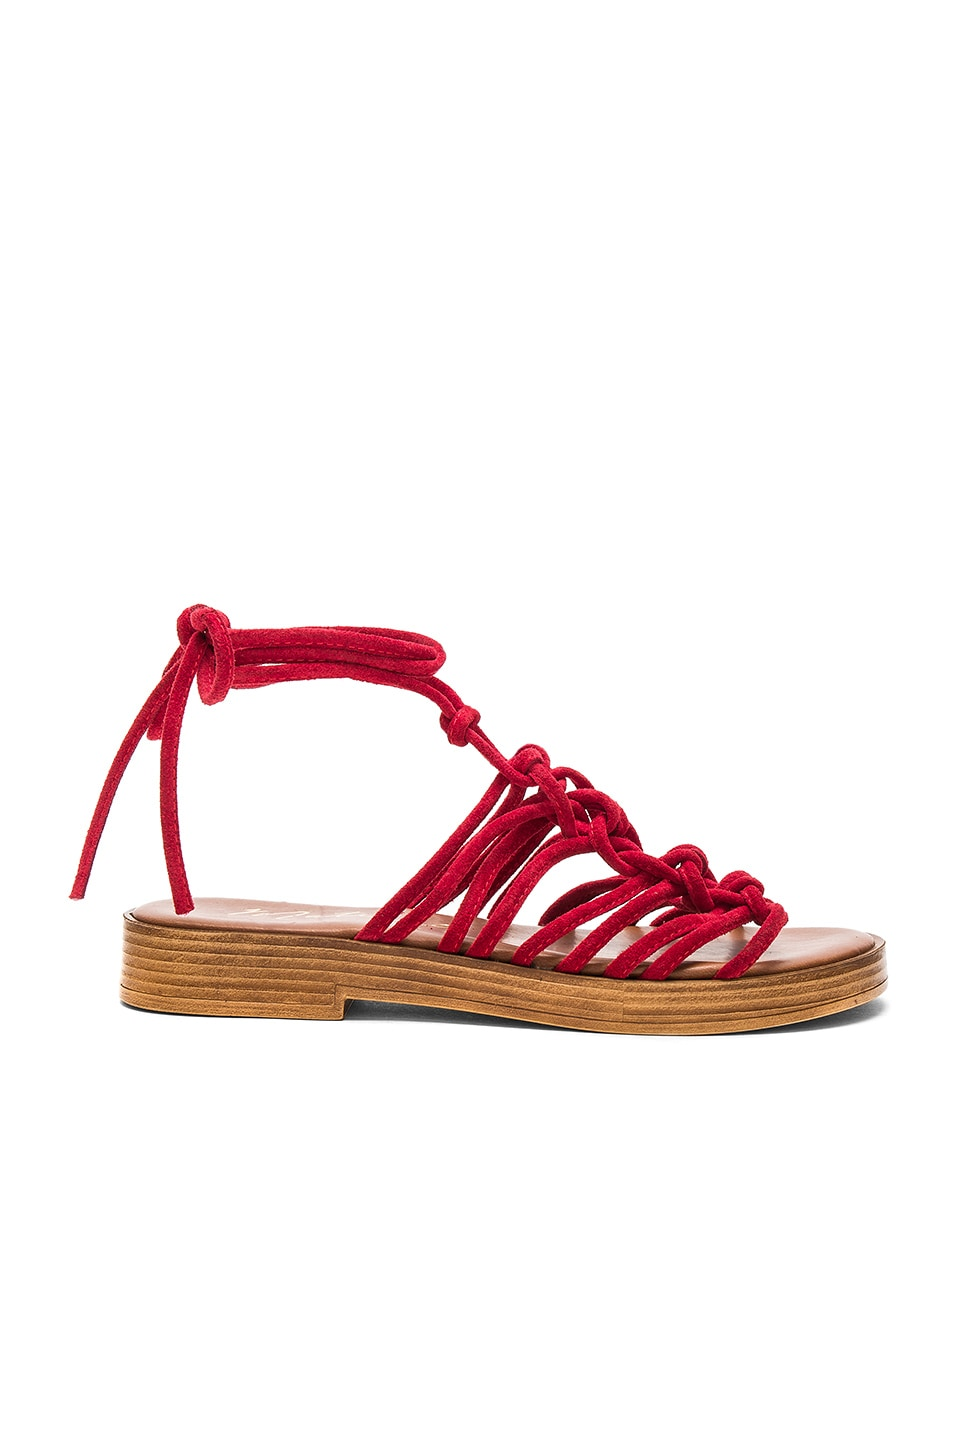 Matisse Origin Sandal in Red